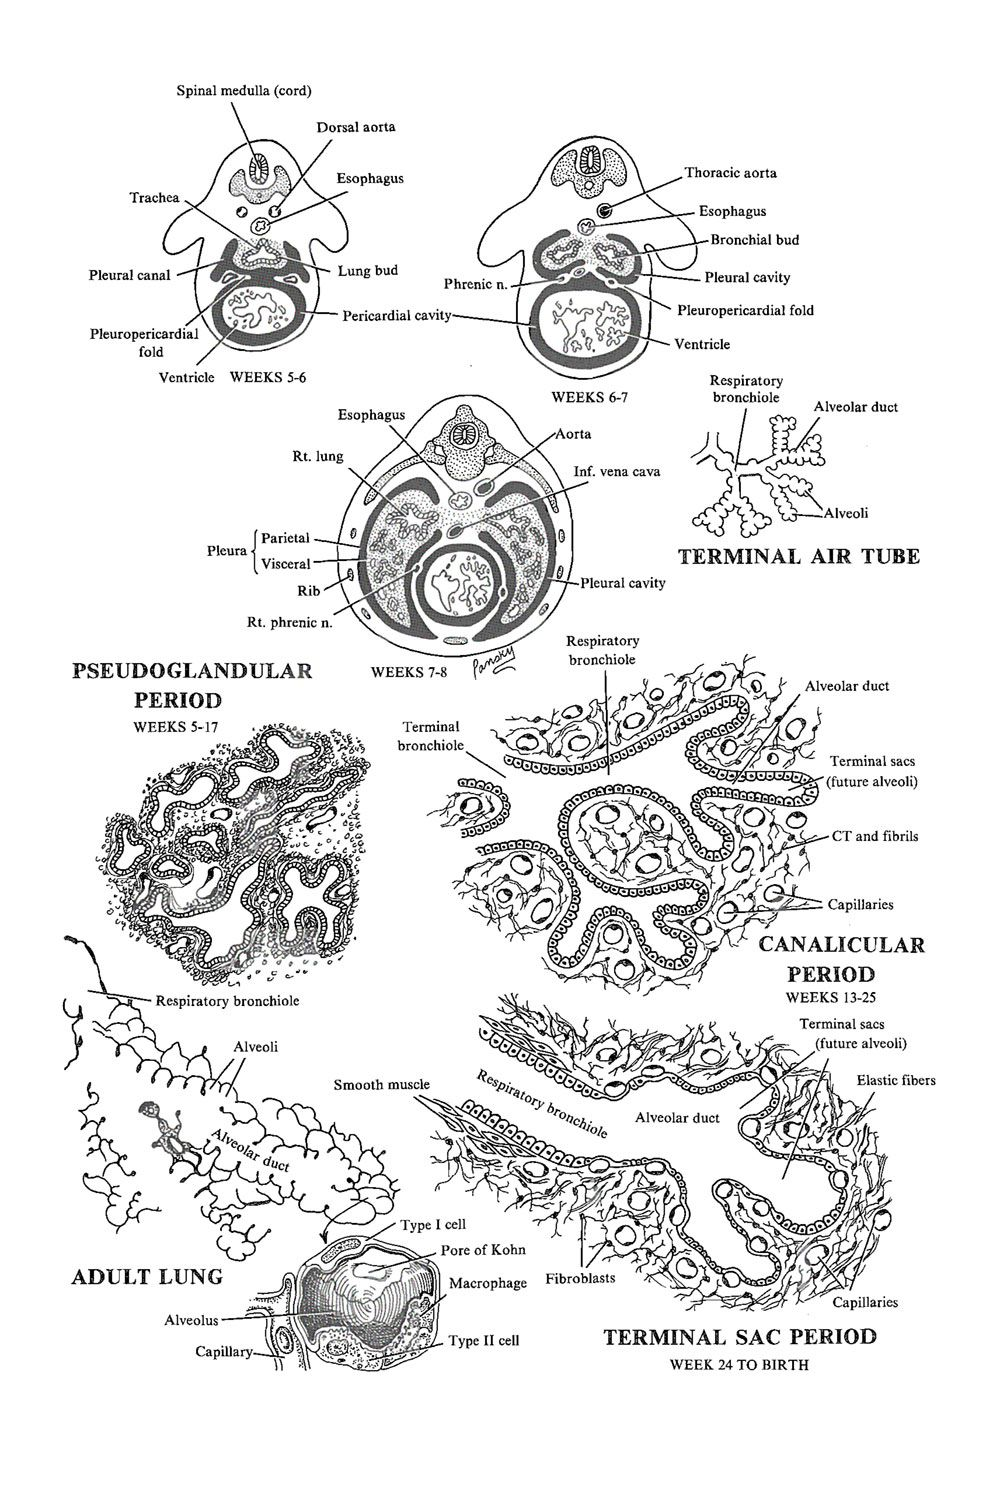 Development Of The Lower Respiratory System The Lungs And Terminal